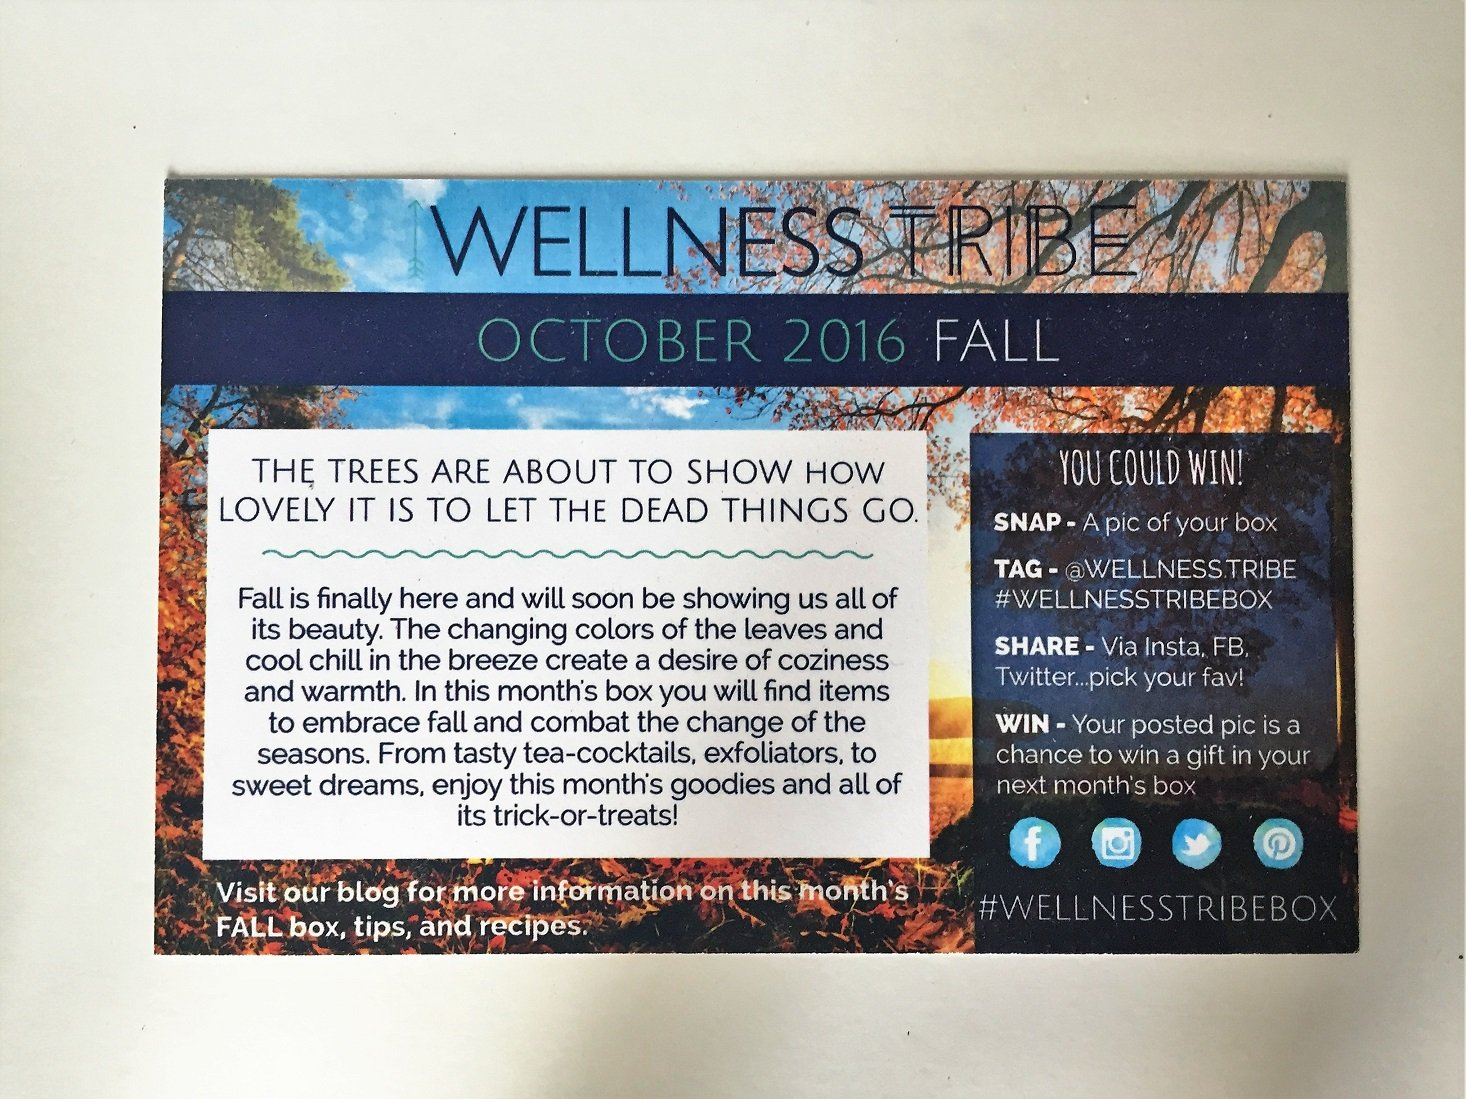 wellness-tribe-october-2016-04frontcard